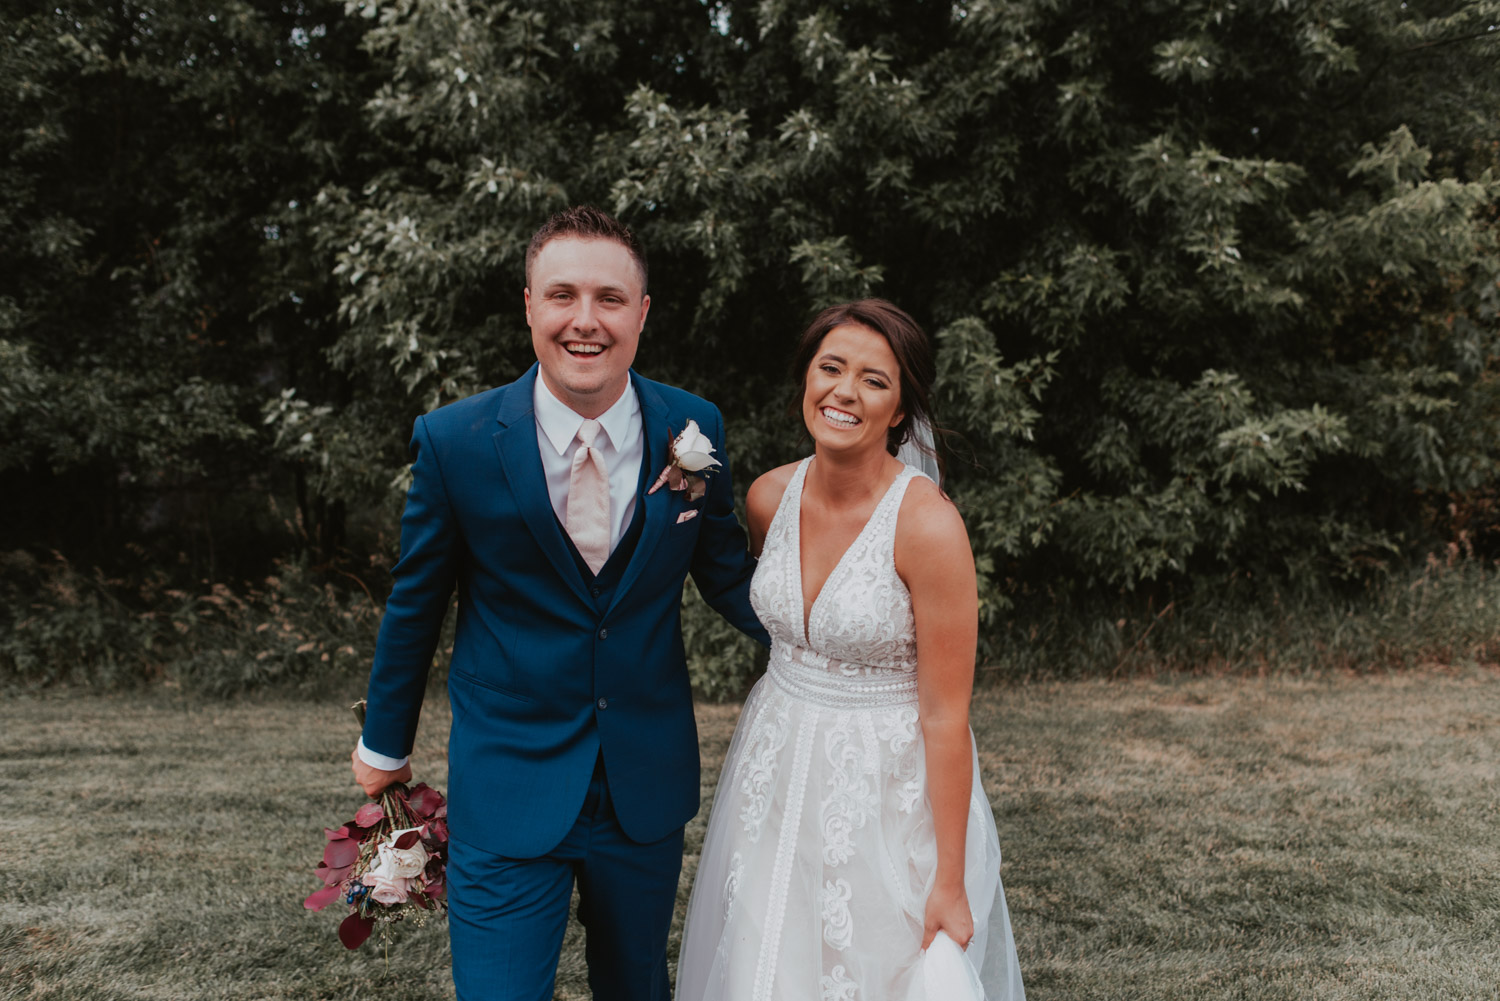 bride and groom portraits at ackerhurst barn in omaha, nebraska